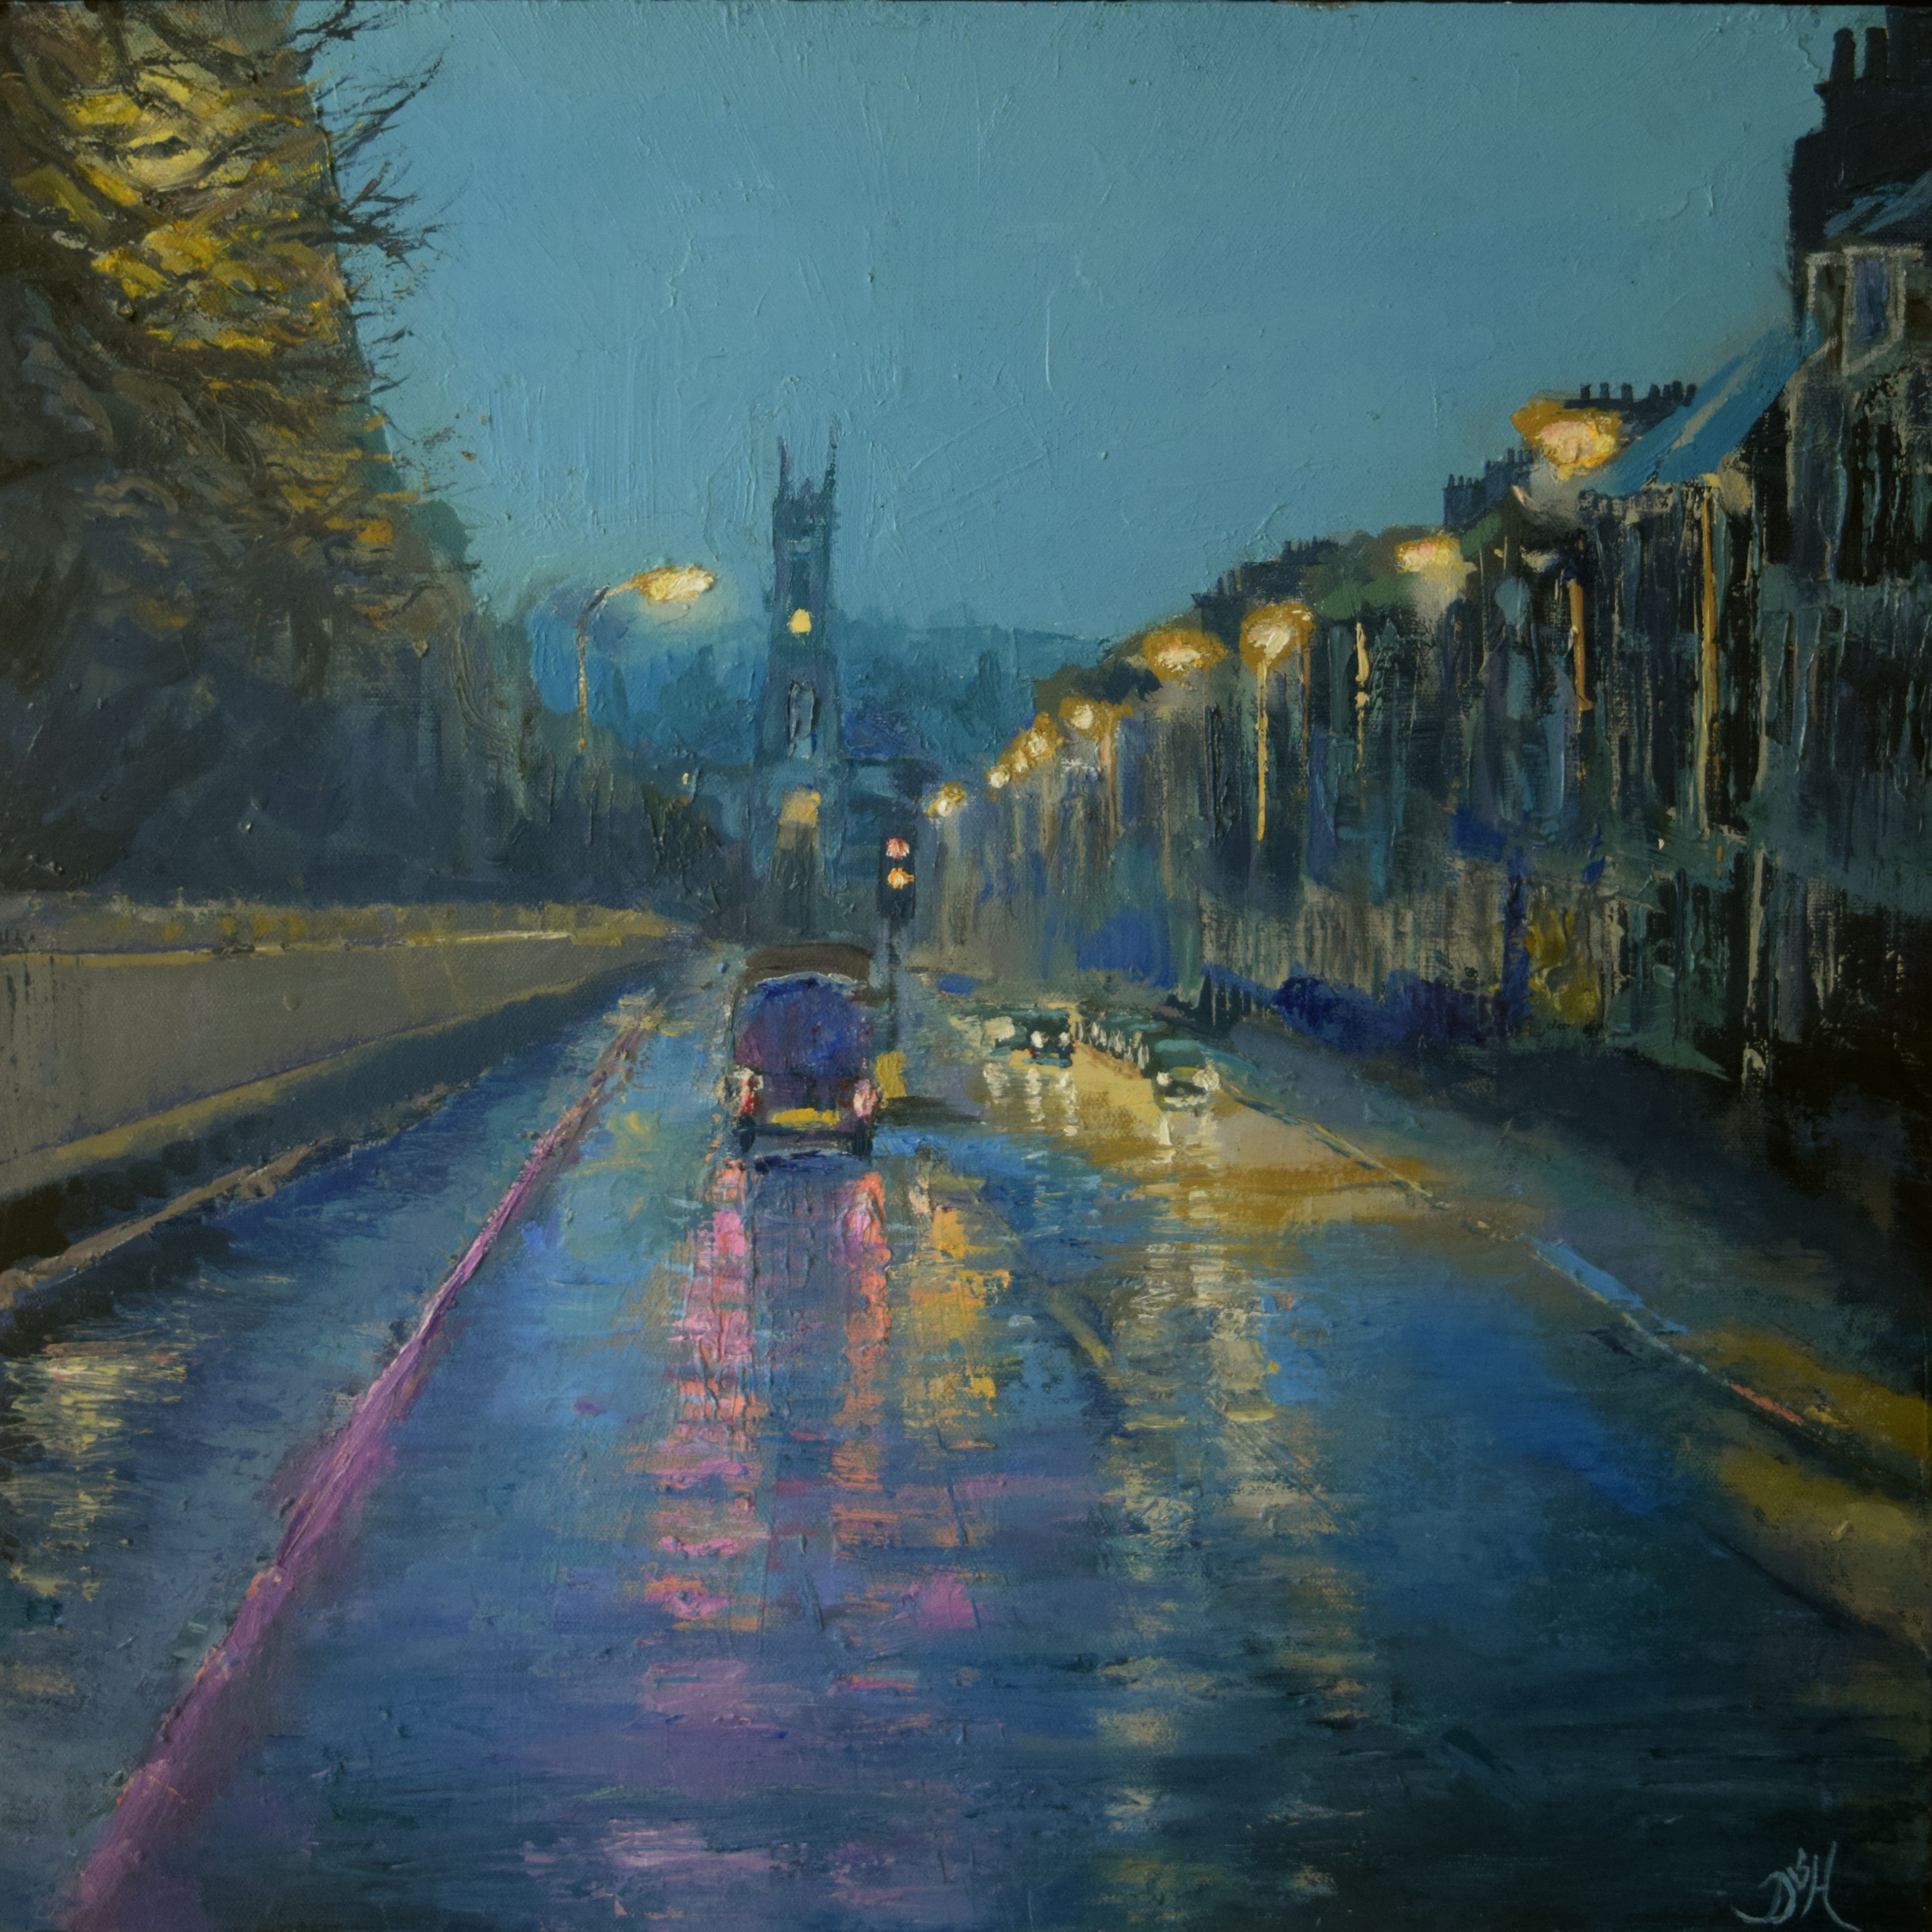 Rainy evening, Edinburgh by Douglas Hamilton